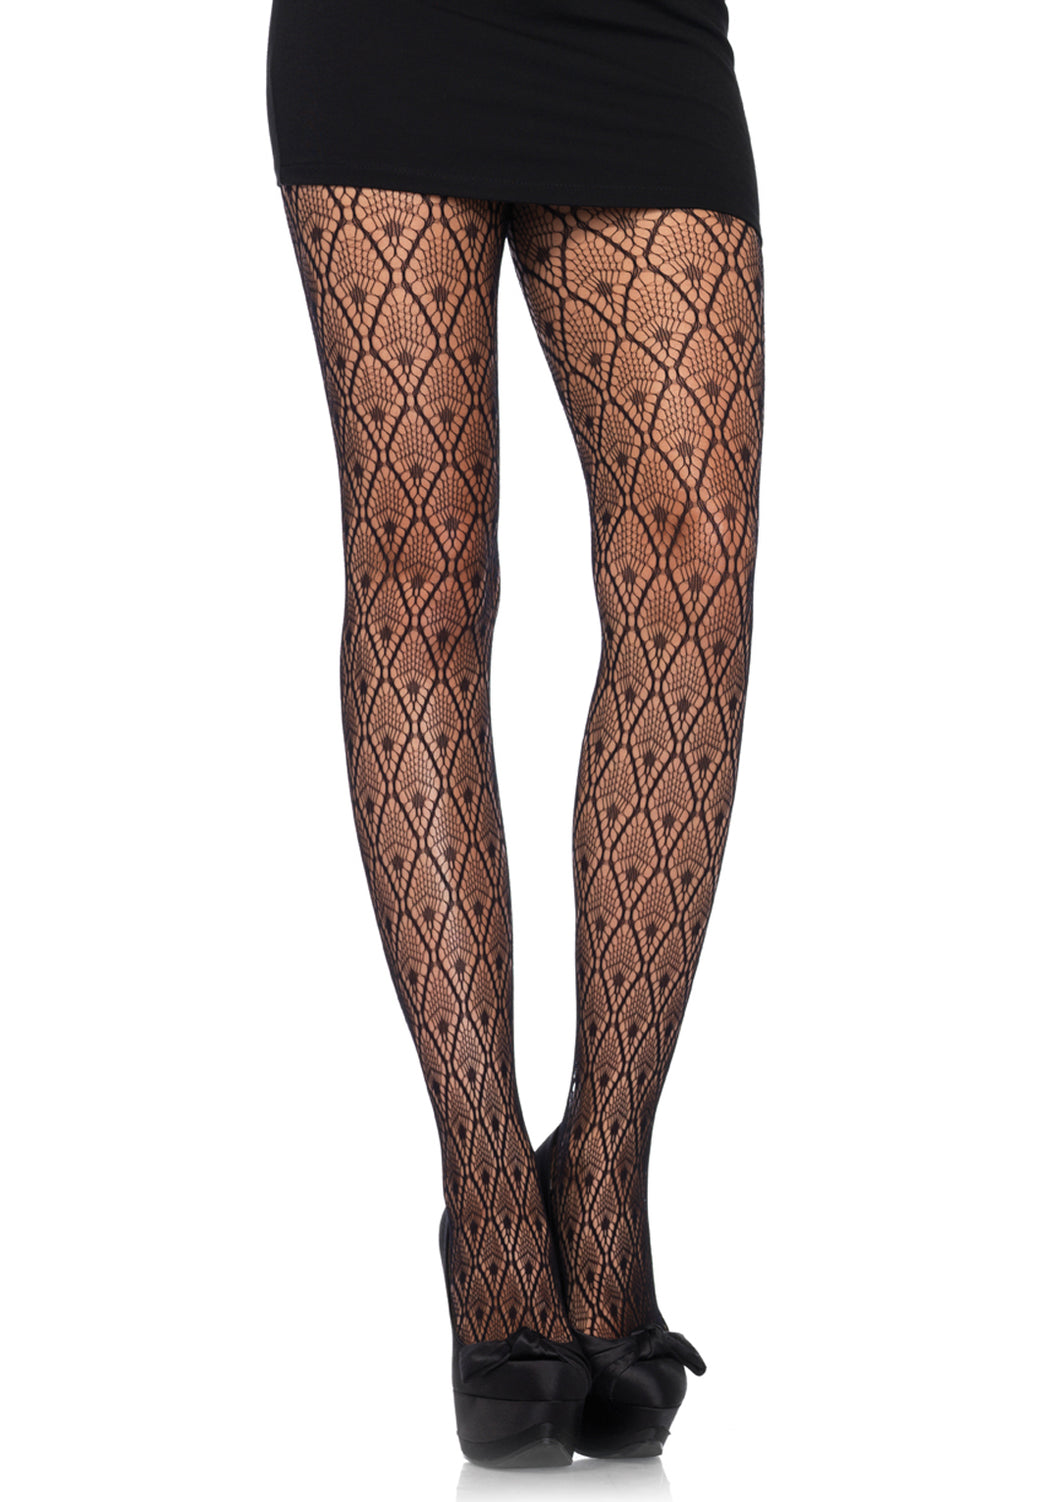 Leg Avenue Deco Lace Tights